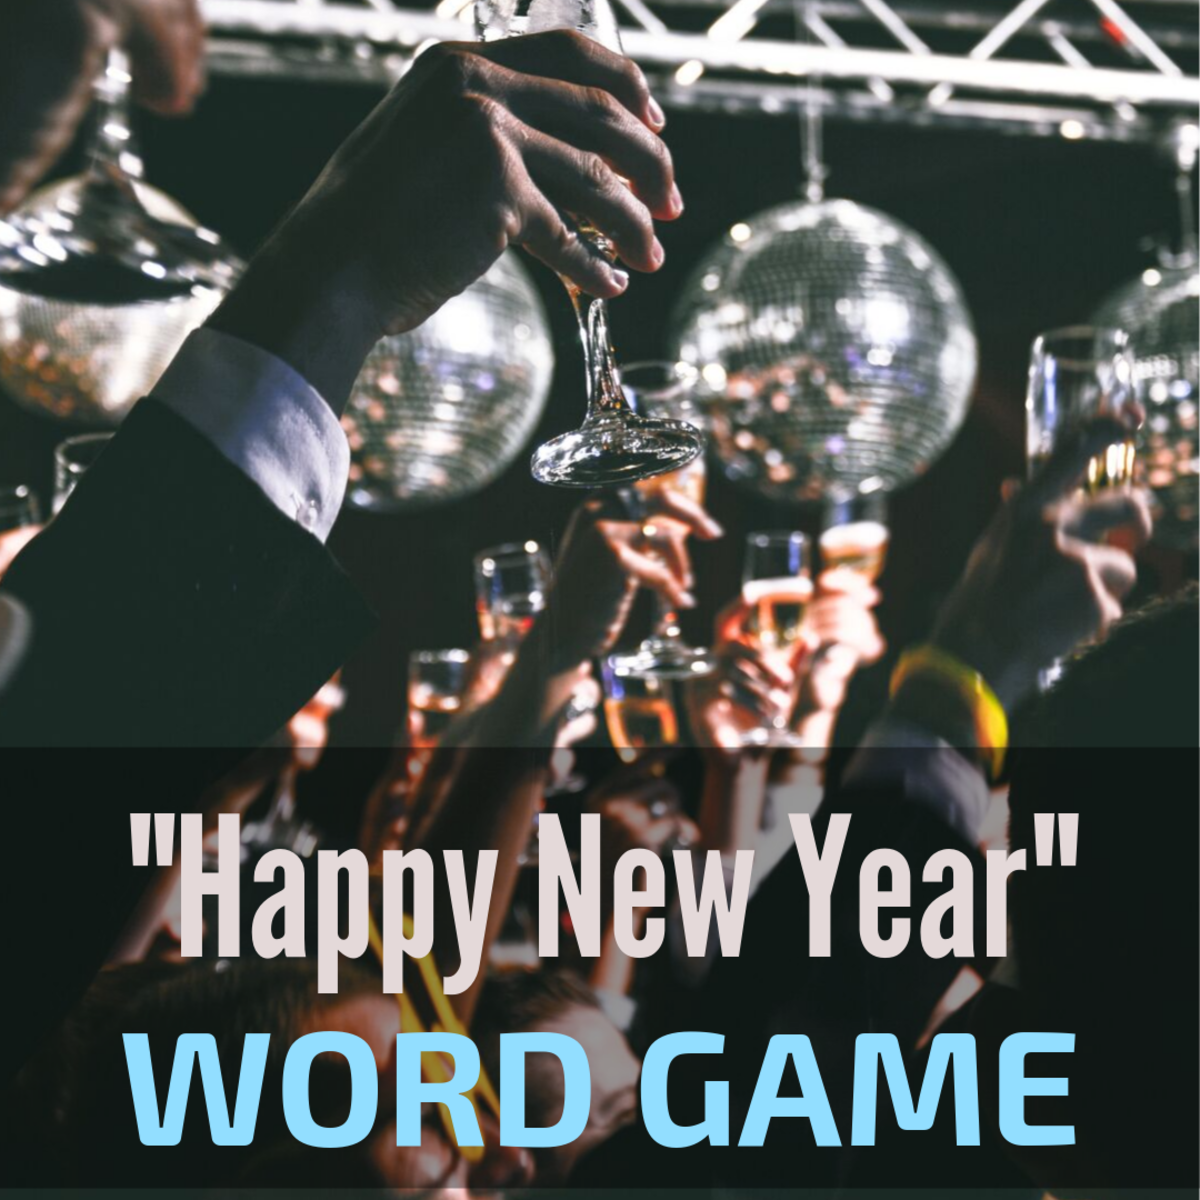 How many new words can you spell for this fun New Year's Eve activity?